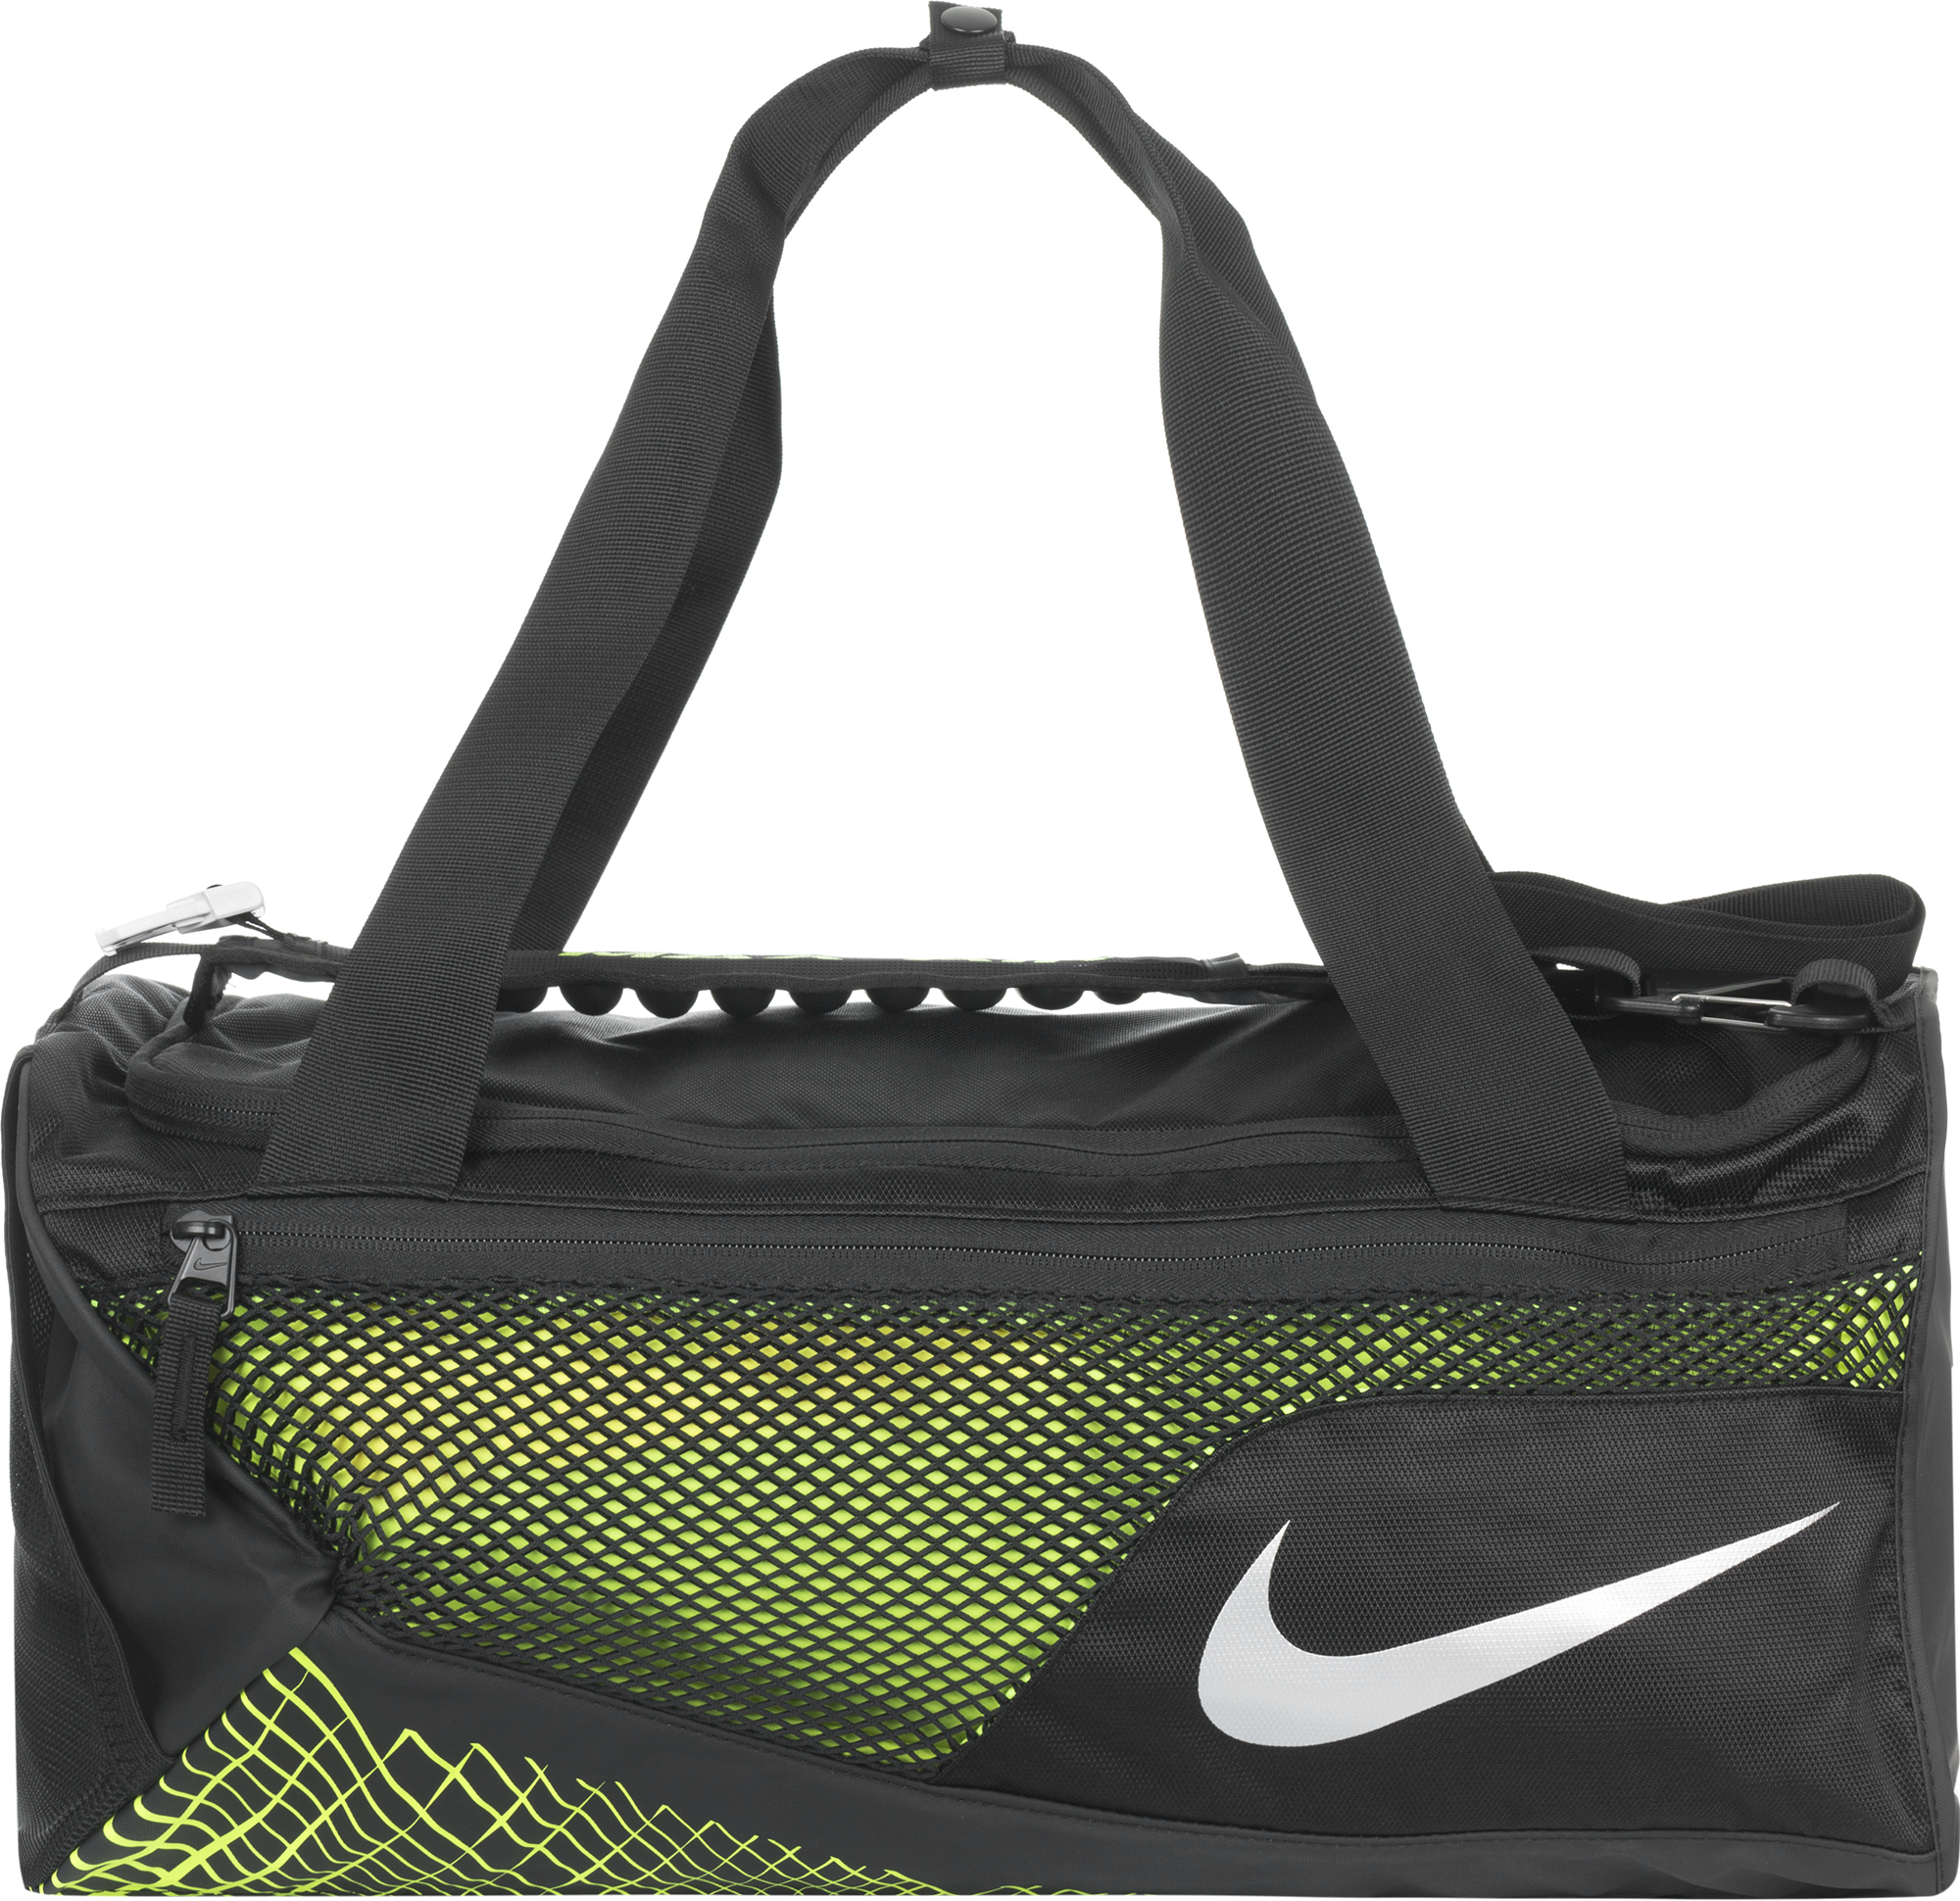 Nike Сумка Nike Vapor Max Air рюкзаки nike рюкзак nike vapor lite backpack